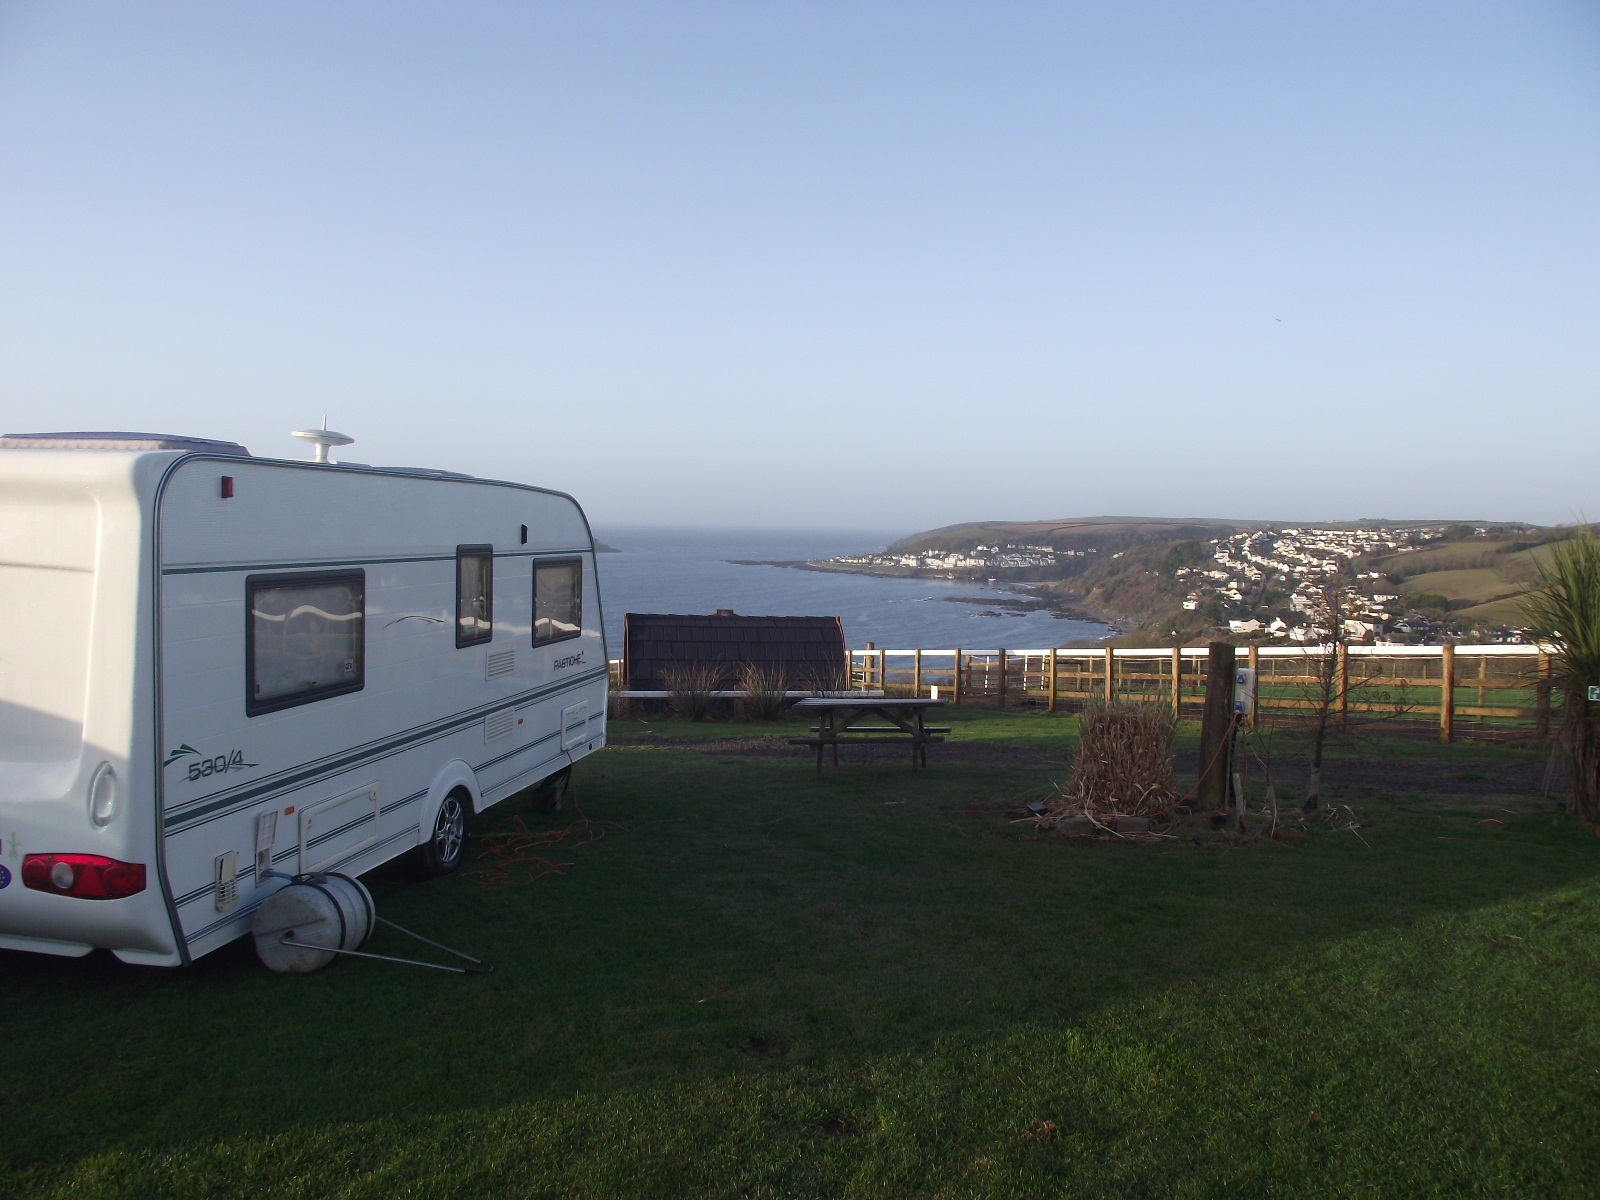 Bay View Park (Looe) - March 2012